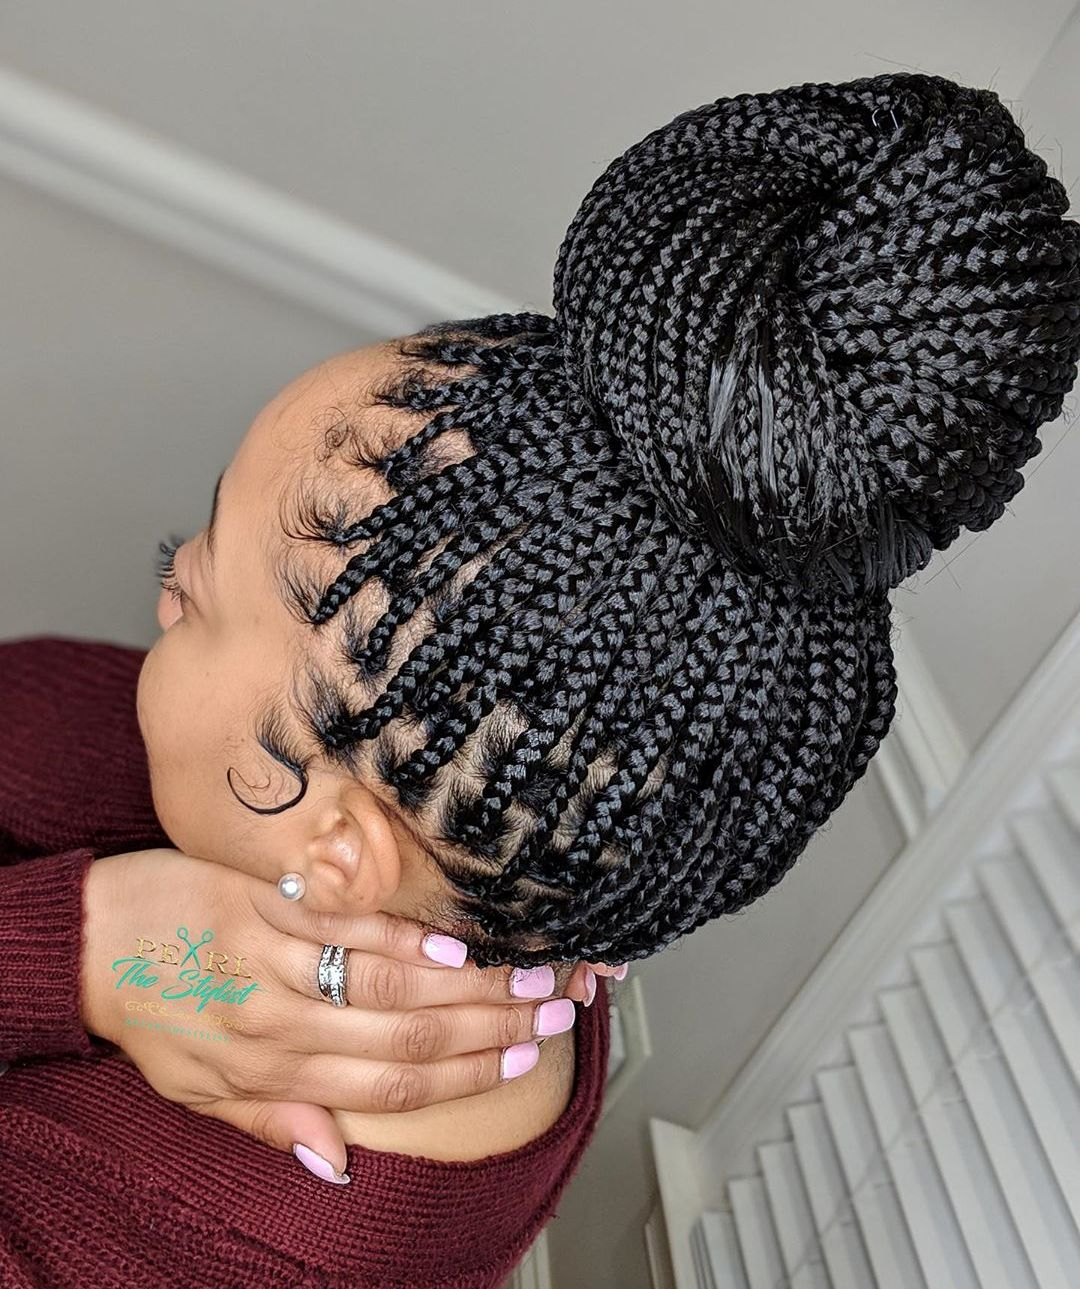 50 Jaw Dropping Braided Hairstyles To Try In 2021 Hair Adviser